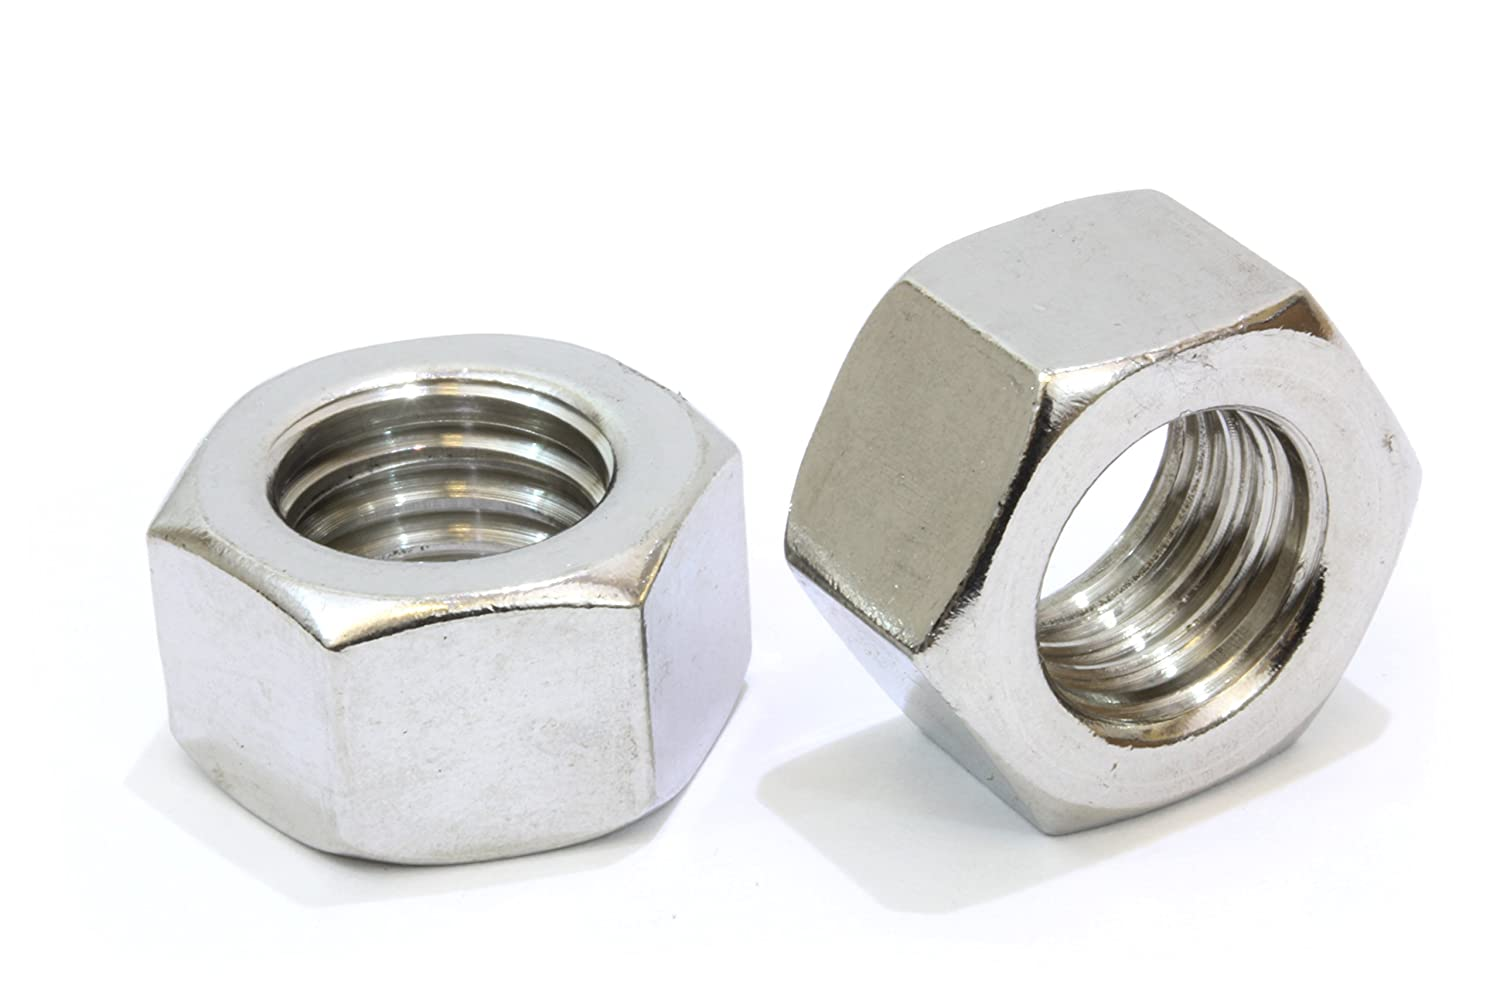 1 4 20 Stainless Hex Nut 100 Pack by Bolt Dropper 304 18 8 Stainless Steel Nuts.